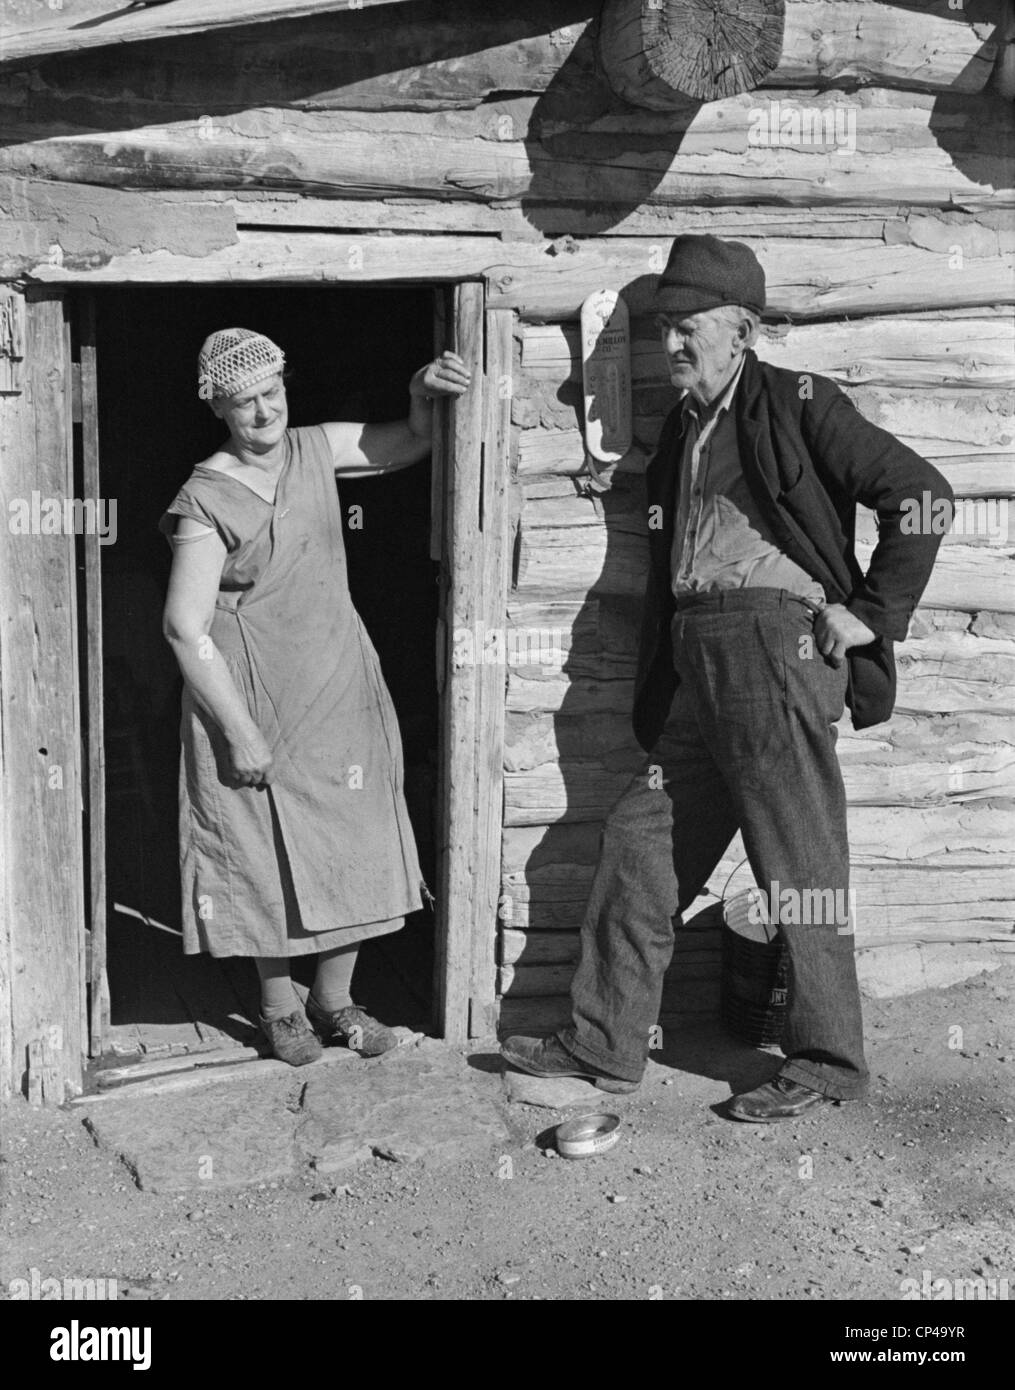 Elderly farmer couple on relief. Mr. and Mrs. O'Brien were drought victims in Williams County North Dakota. - Stock Image